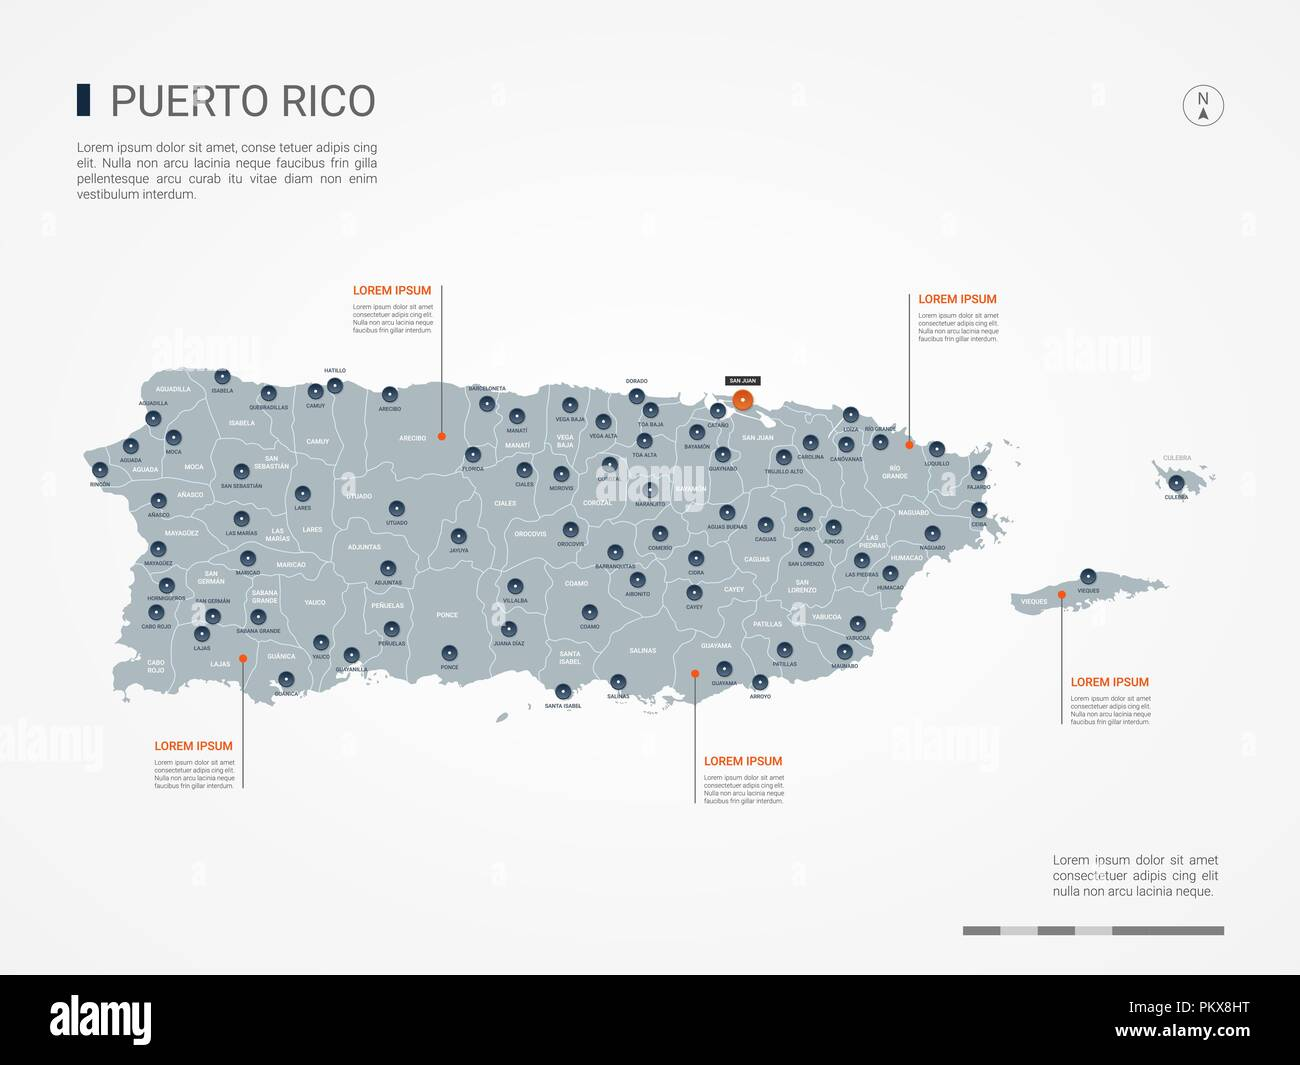 Puerto Rico Map Stock Vector Images - Alamy